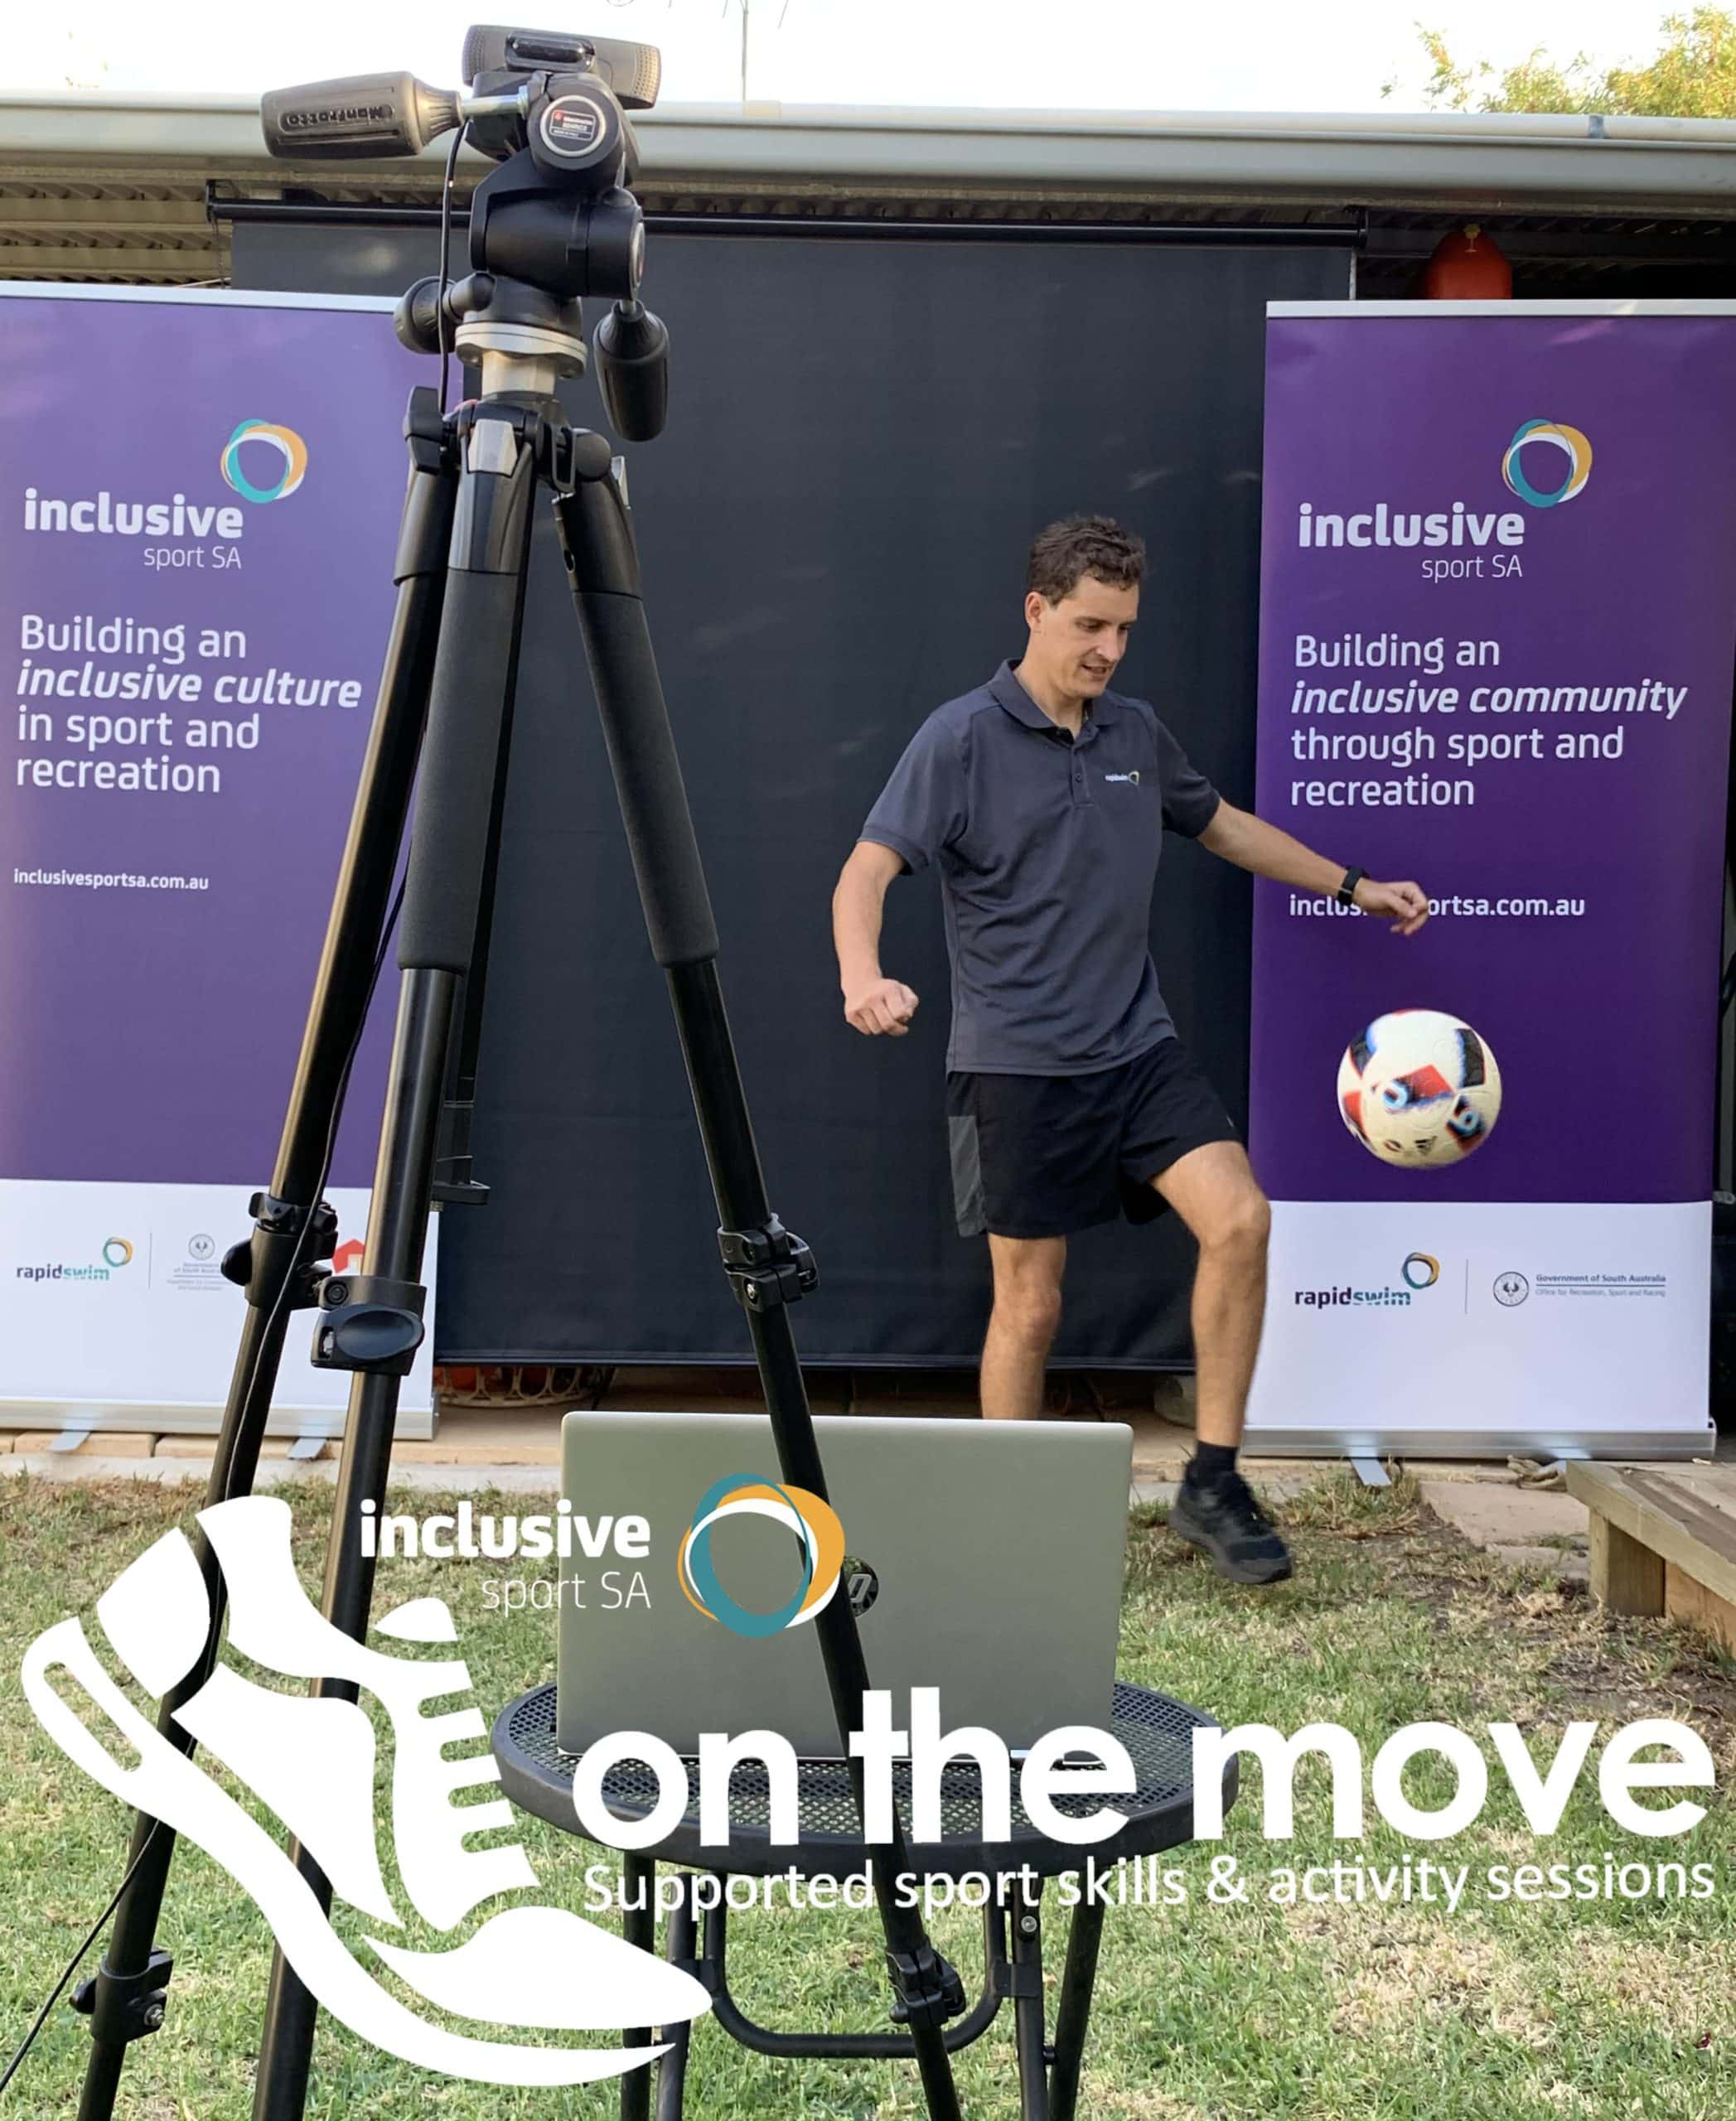 Ben Steer kicking soccer ball with On The Move Logo at the bottom of image